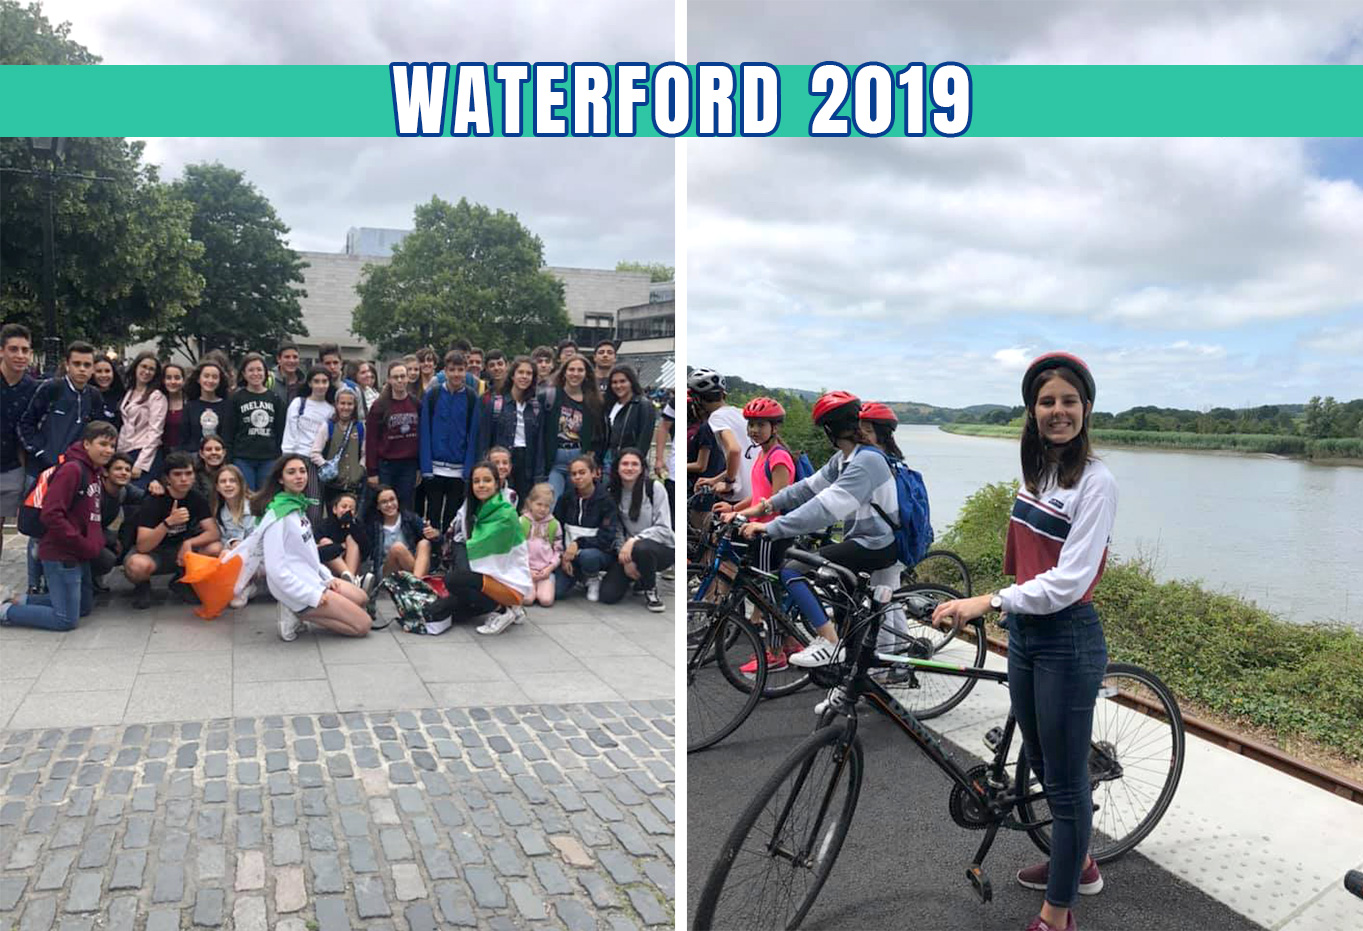 Program Review: WATERFORD 2019